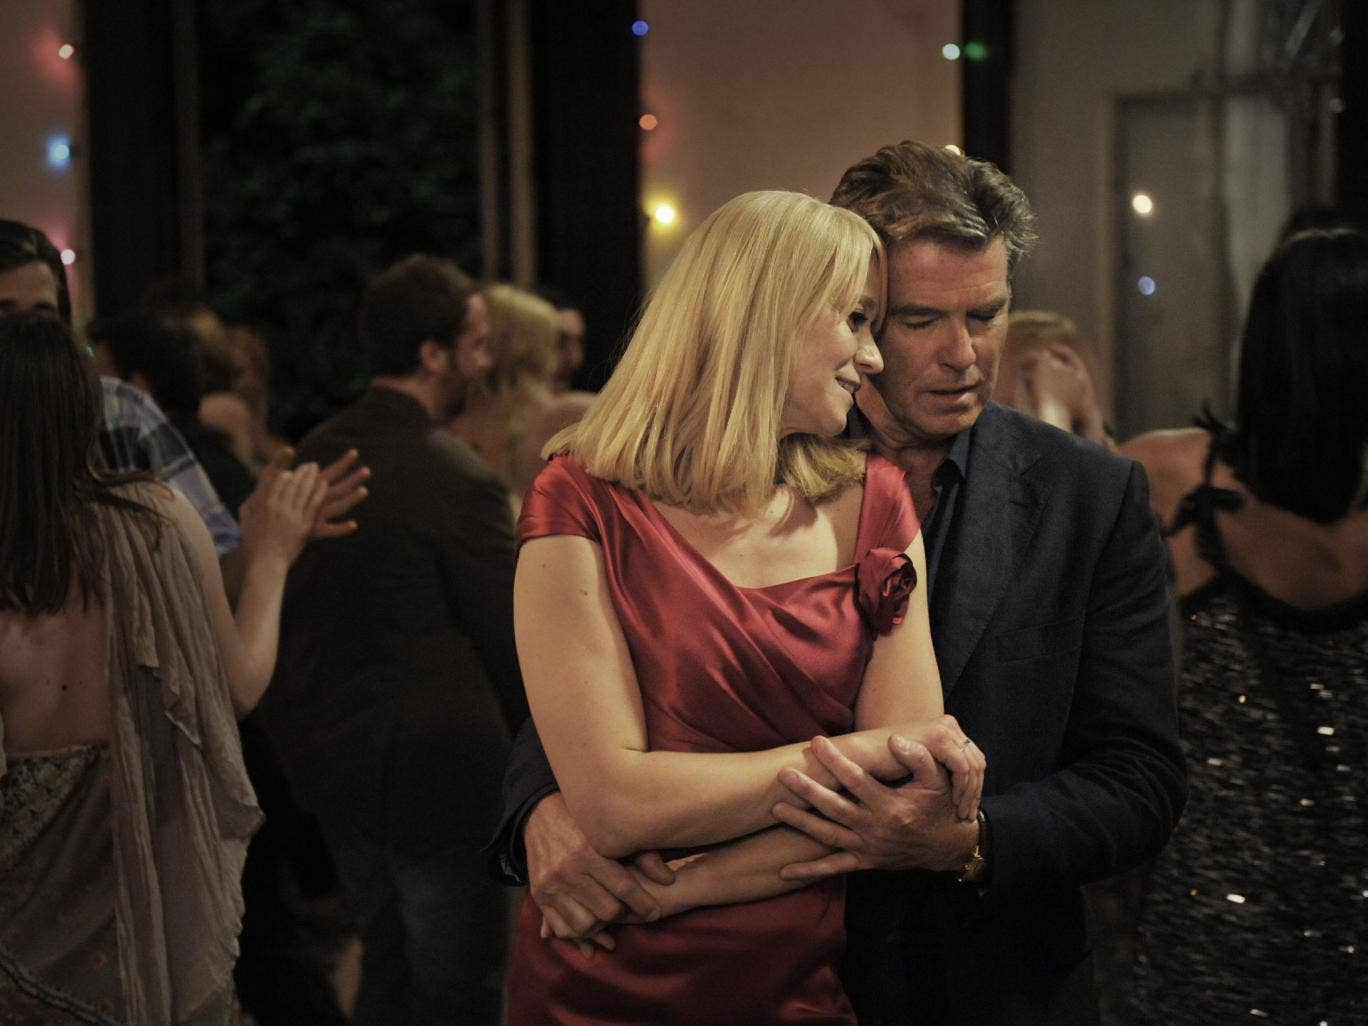 Dance away the heartache: Pierce Brosnan and Trine Dyrholm in 'Love Is All You Need'